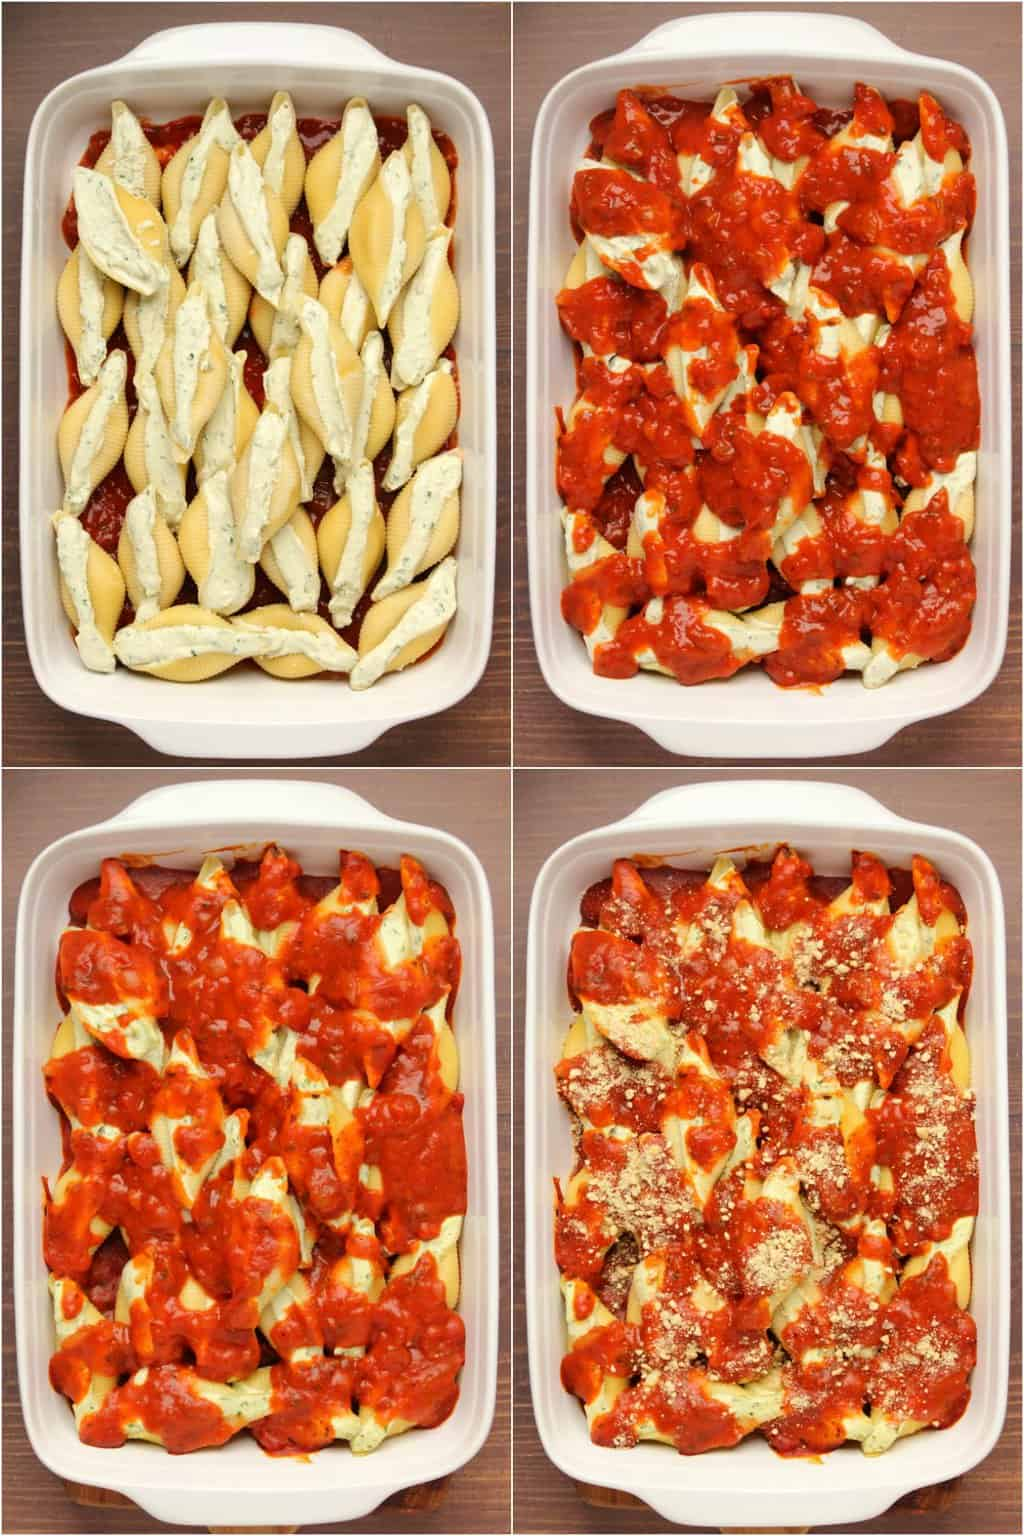 Step by step process photo collage of making vegan stuffed shells.